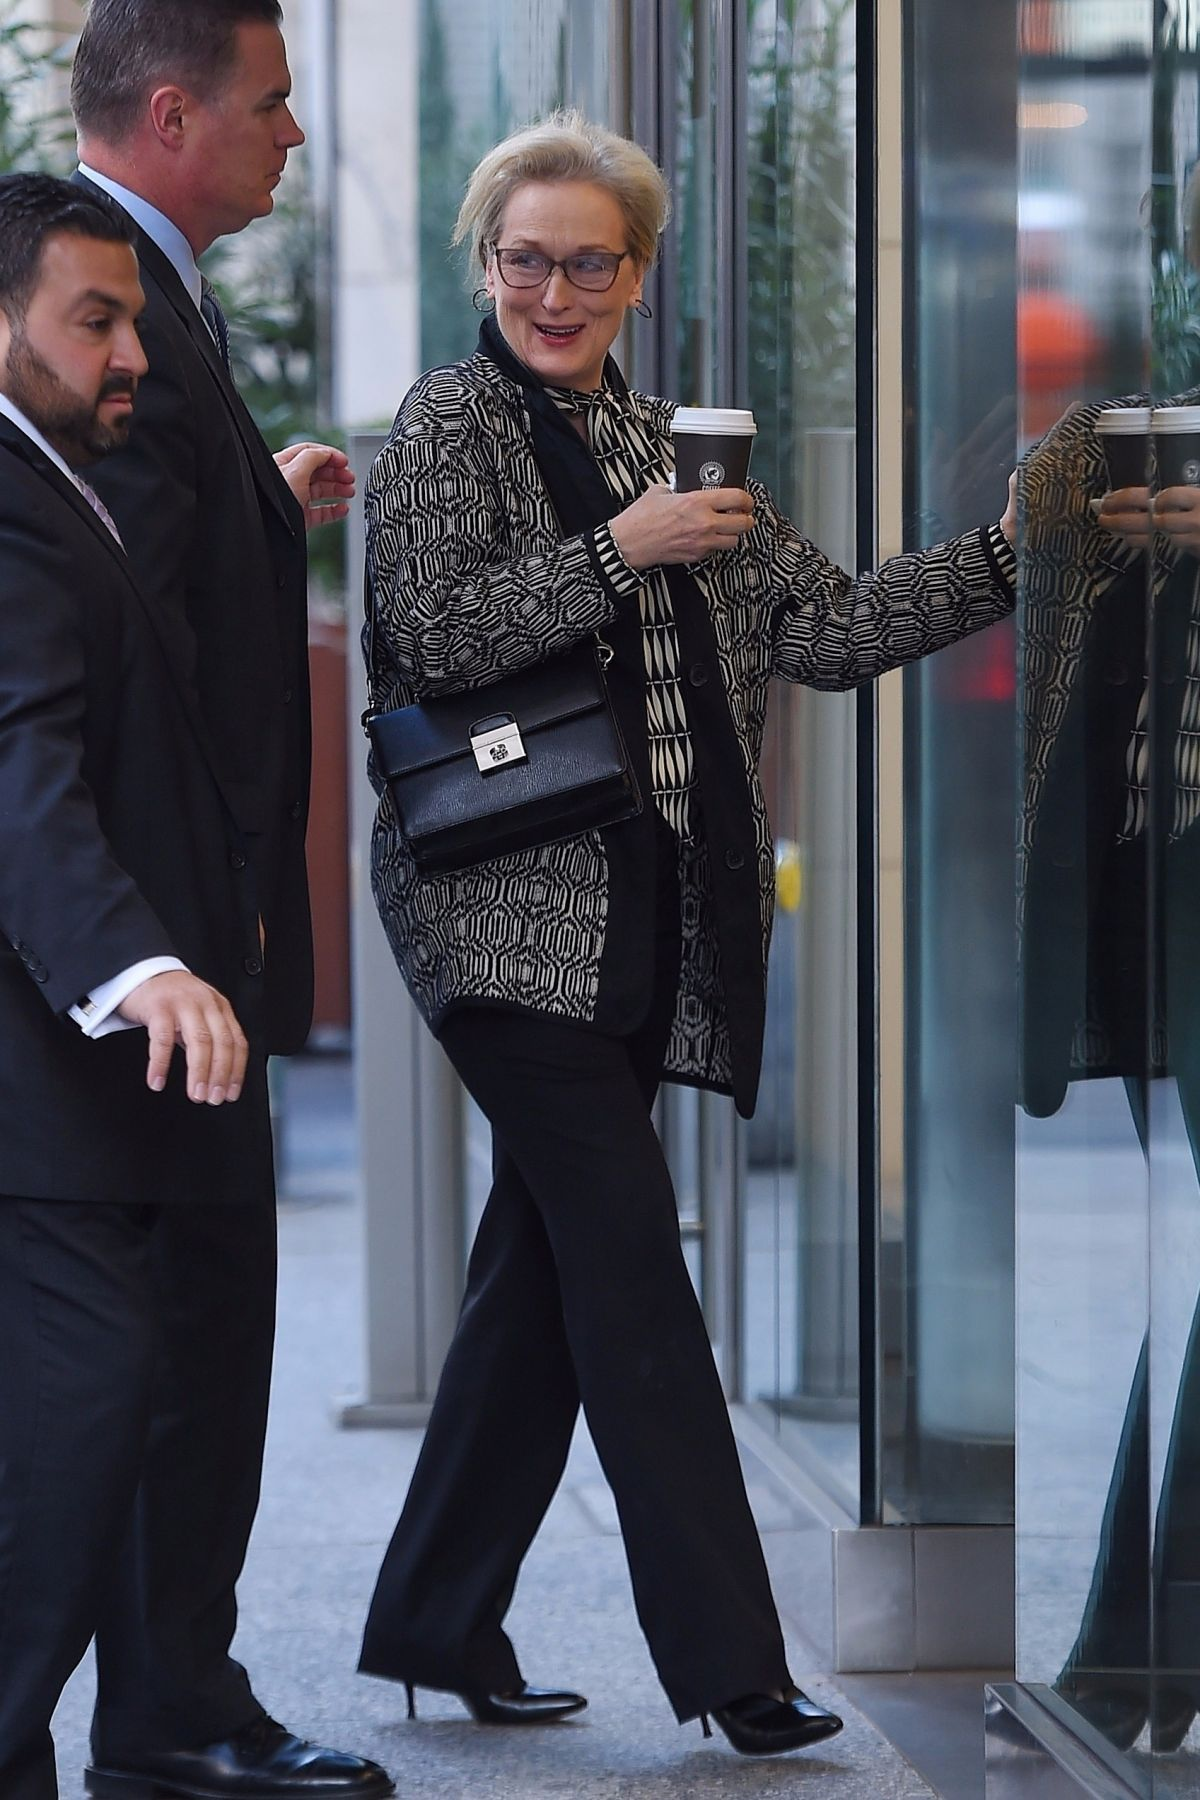 http://www.hawtcelebs.com/wp-content/uploads/2017/11/meryl-streep-out-for-coffe-in-new-york-11-20-2017-0.jpg